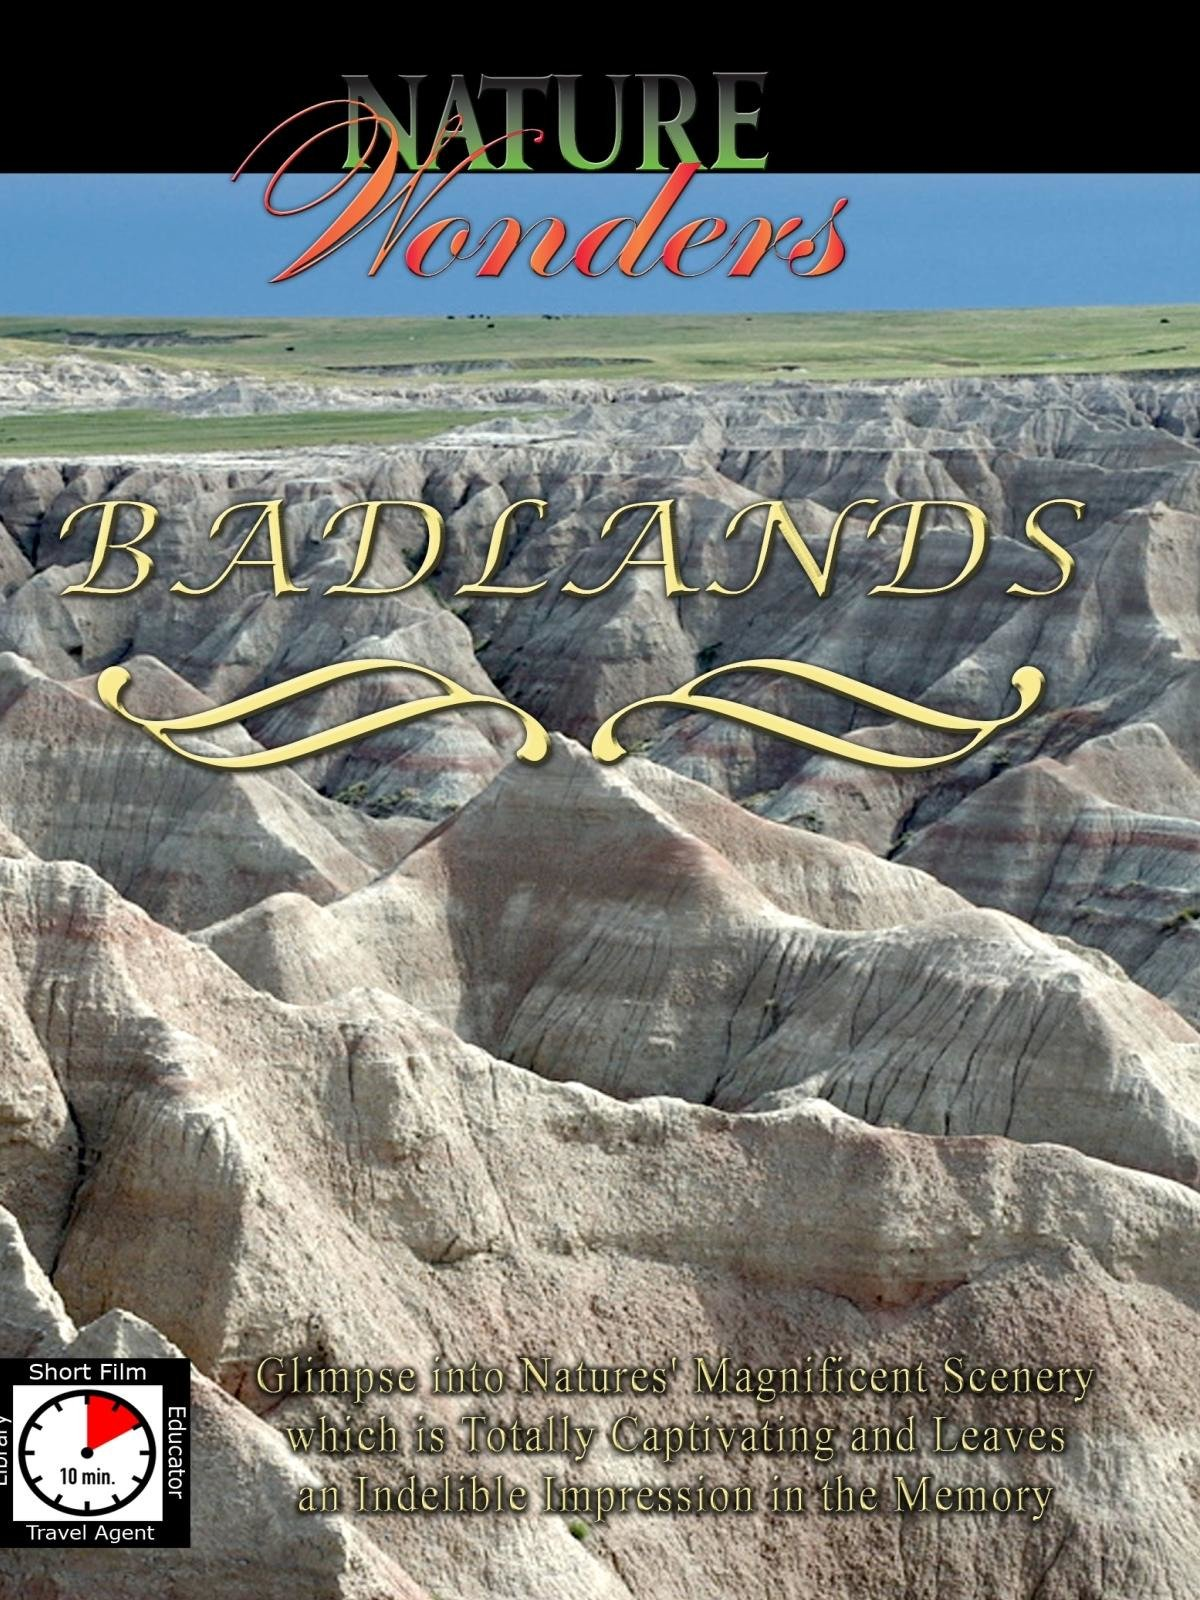 Nature Wonders - Badlands - South Dakota - U.S.A. on Amazon Prime Instant Video UK